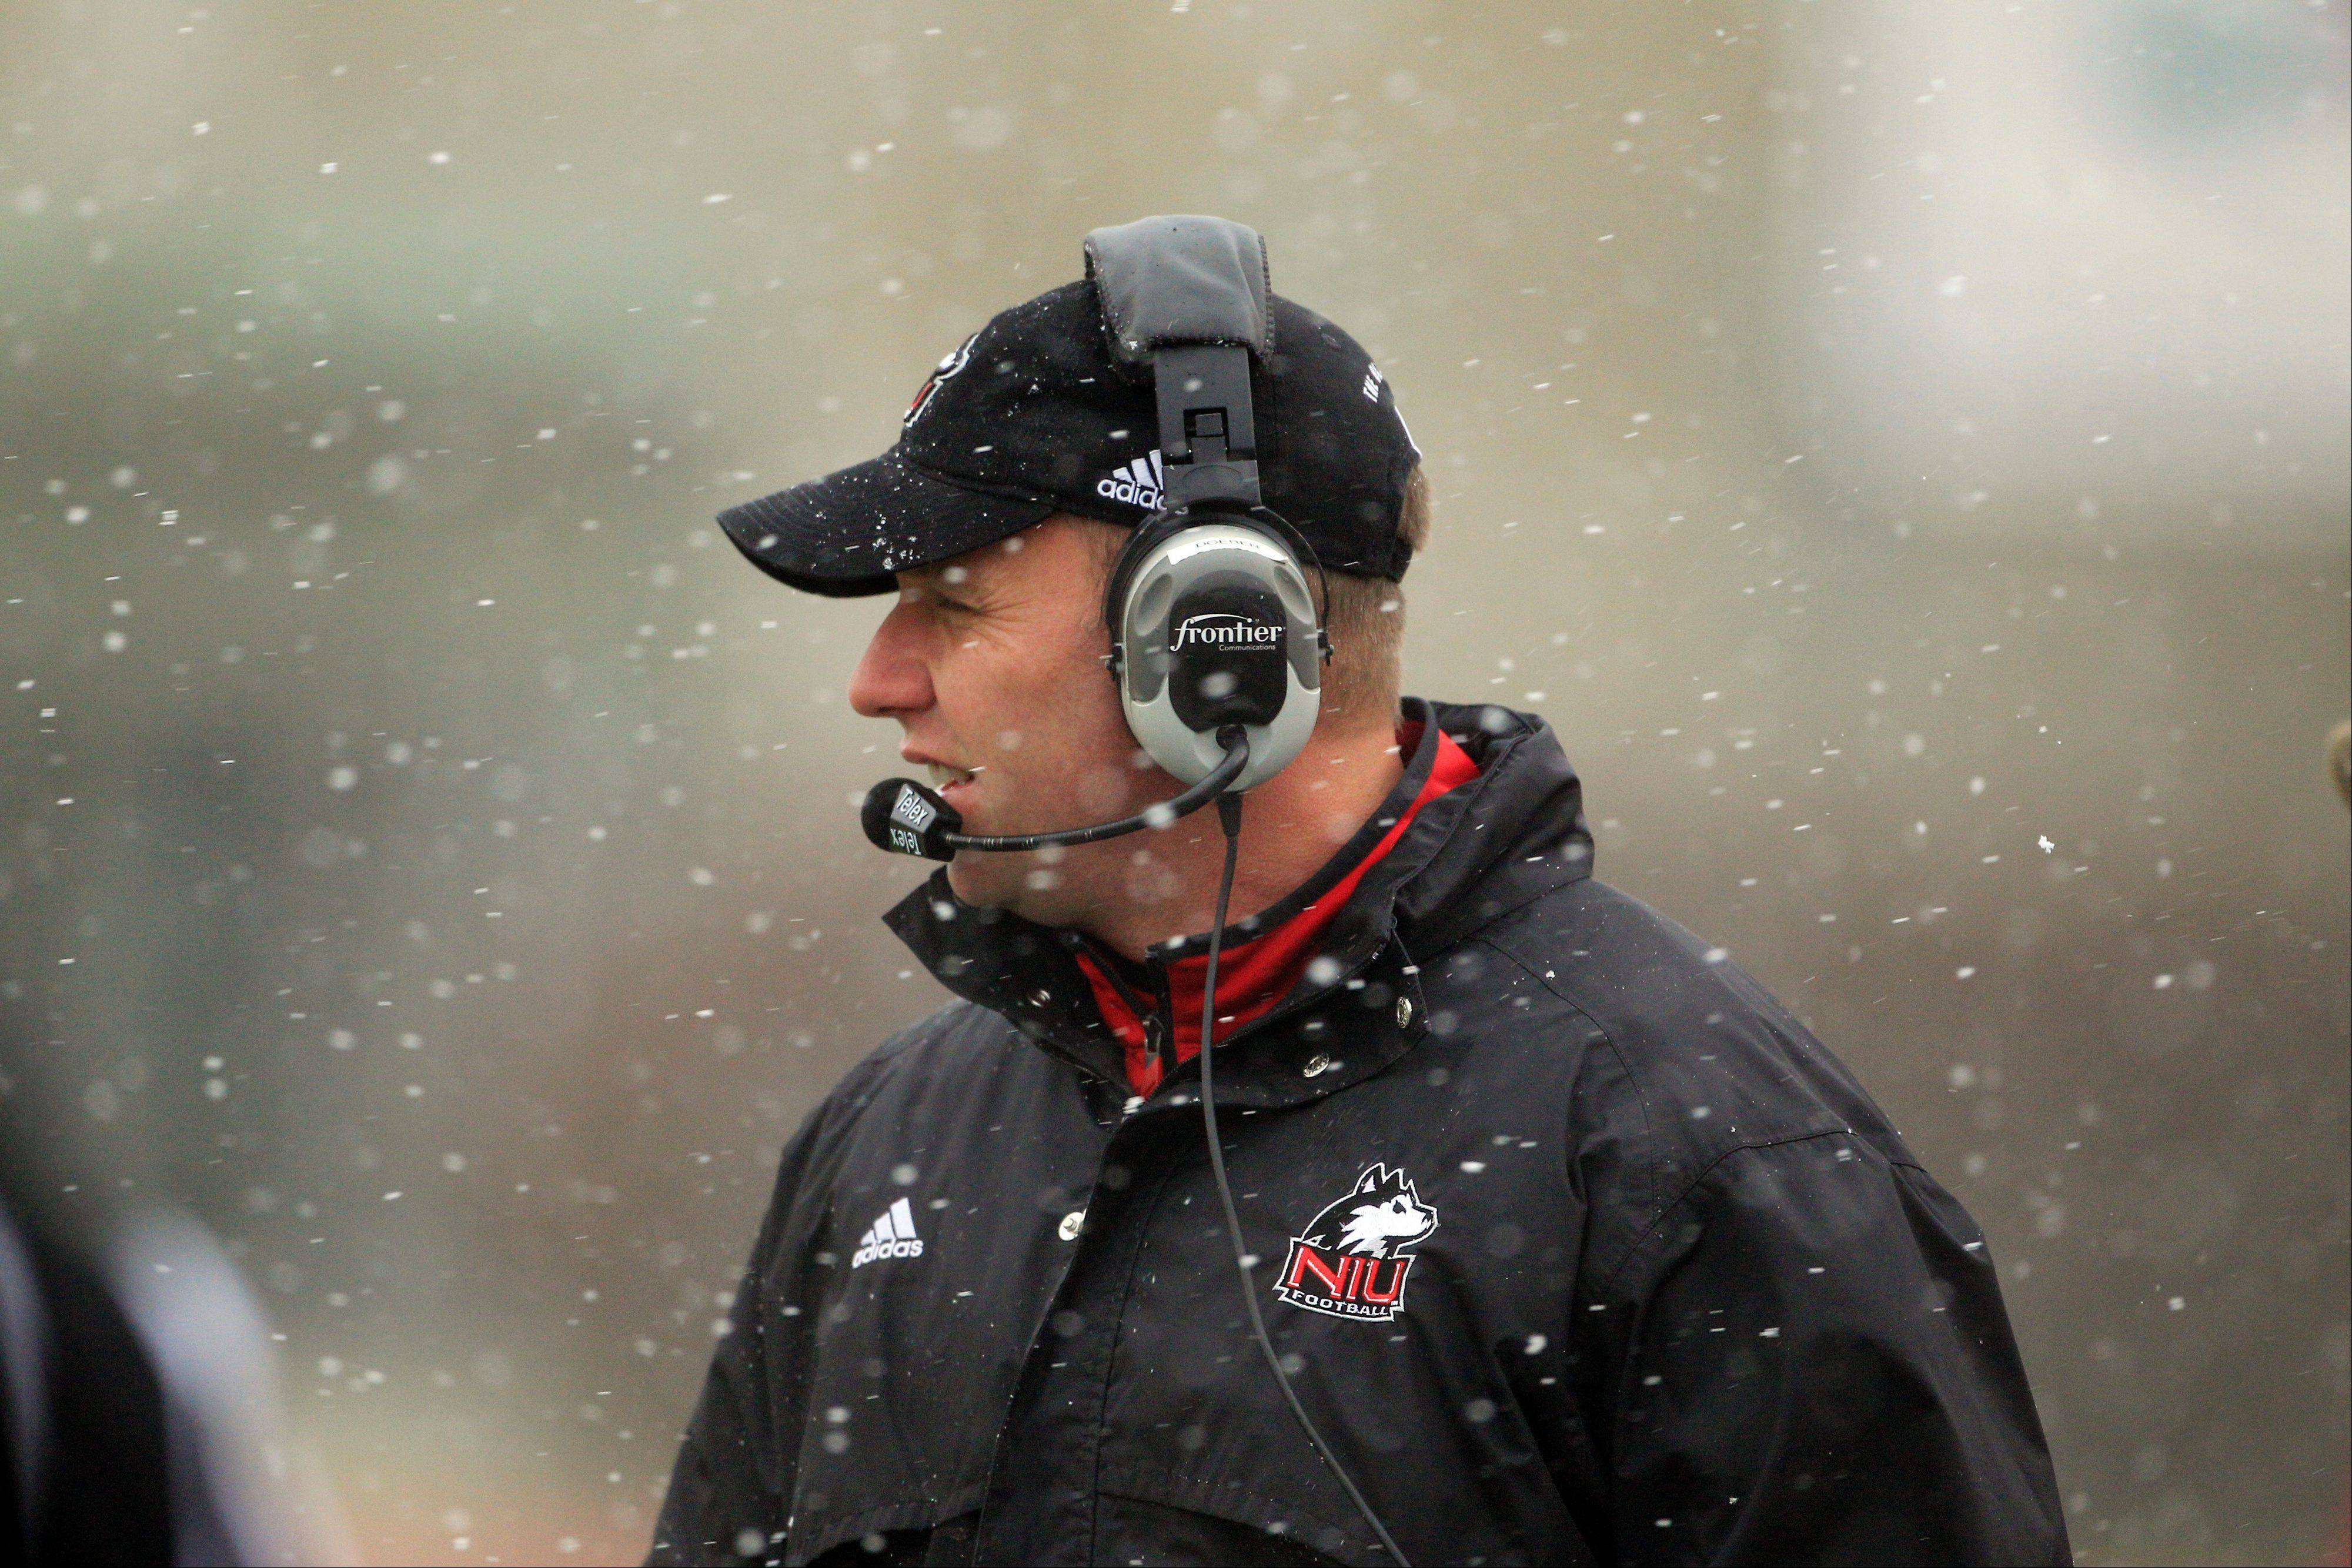 Northern Illinois head coach Dave Doeren watches from the sidelines during the second quarter of an NCAA college football game against Eastern Michigan in Ypsilanti, Mich., Friday, Nov. 23, 2012.